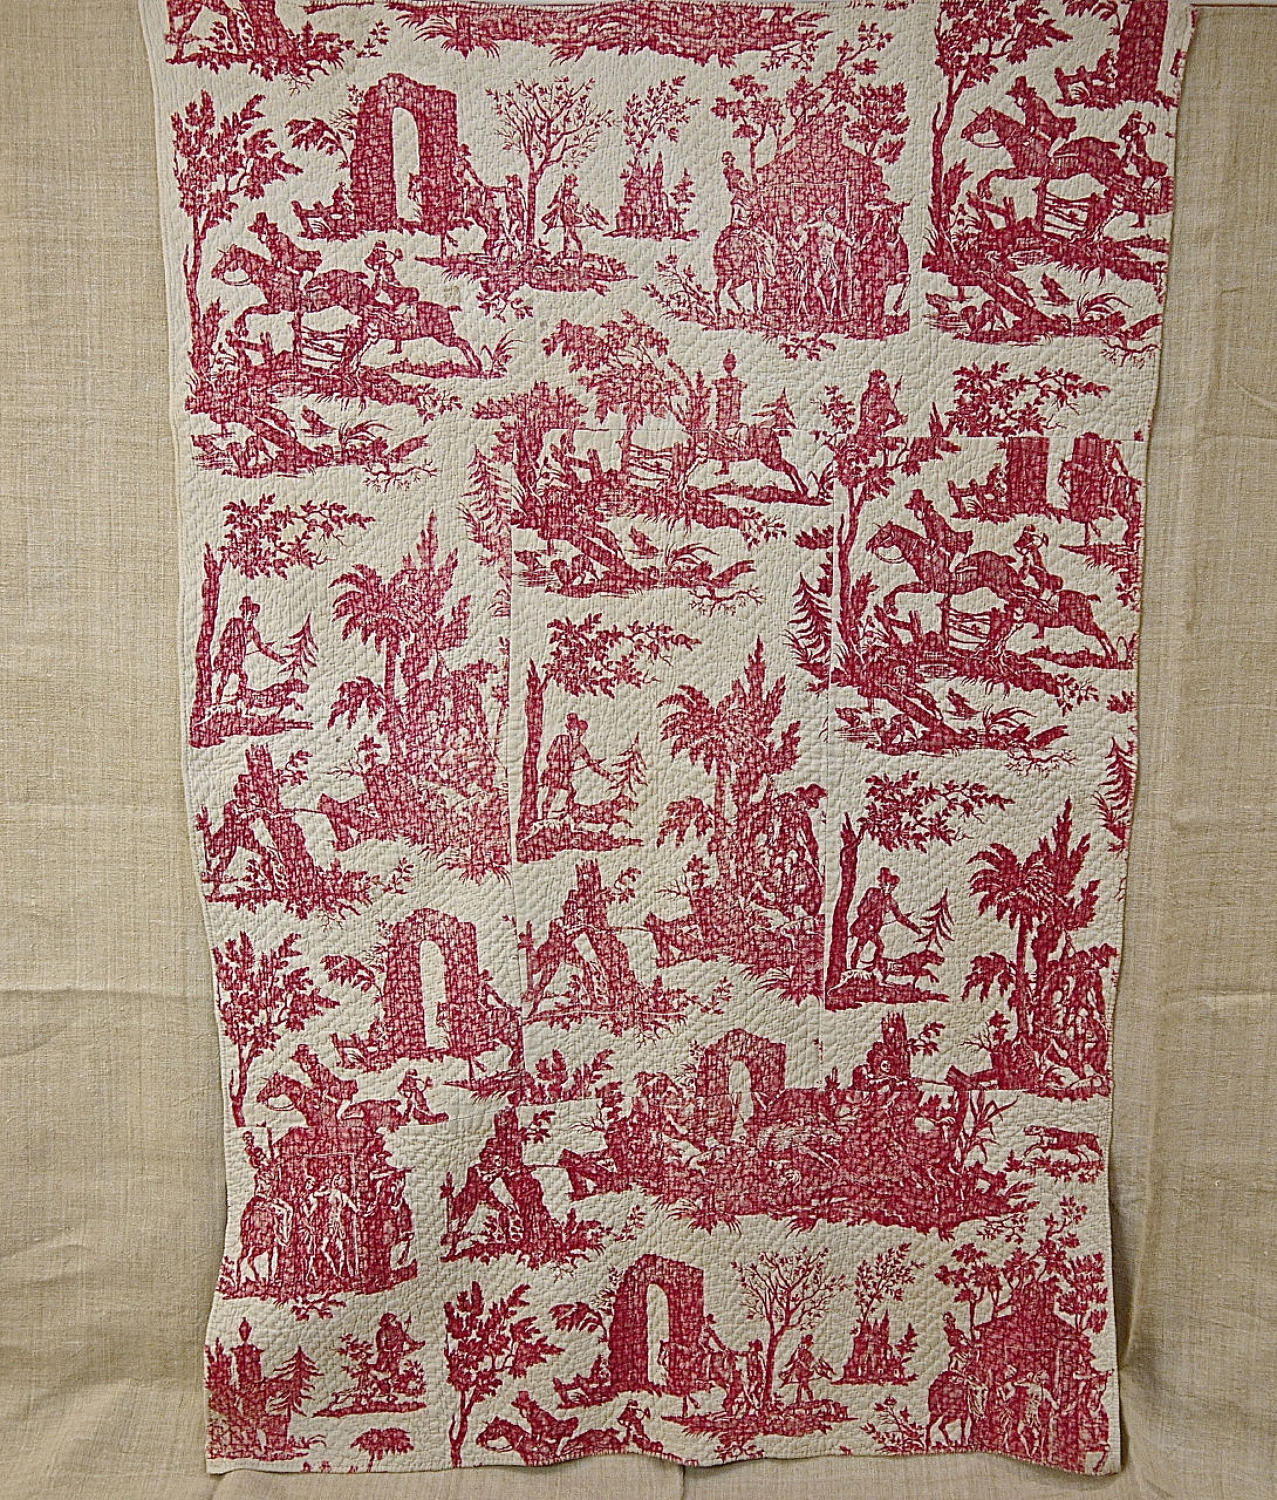 Red Toile Hunting Scenes Small Quilt c.1785 French quilt